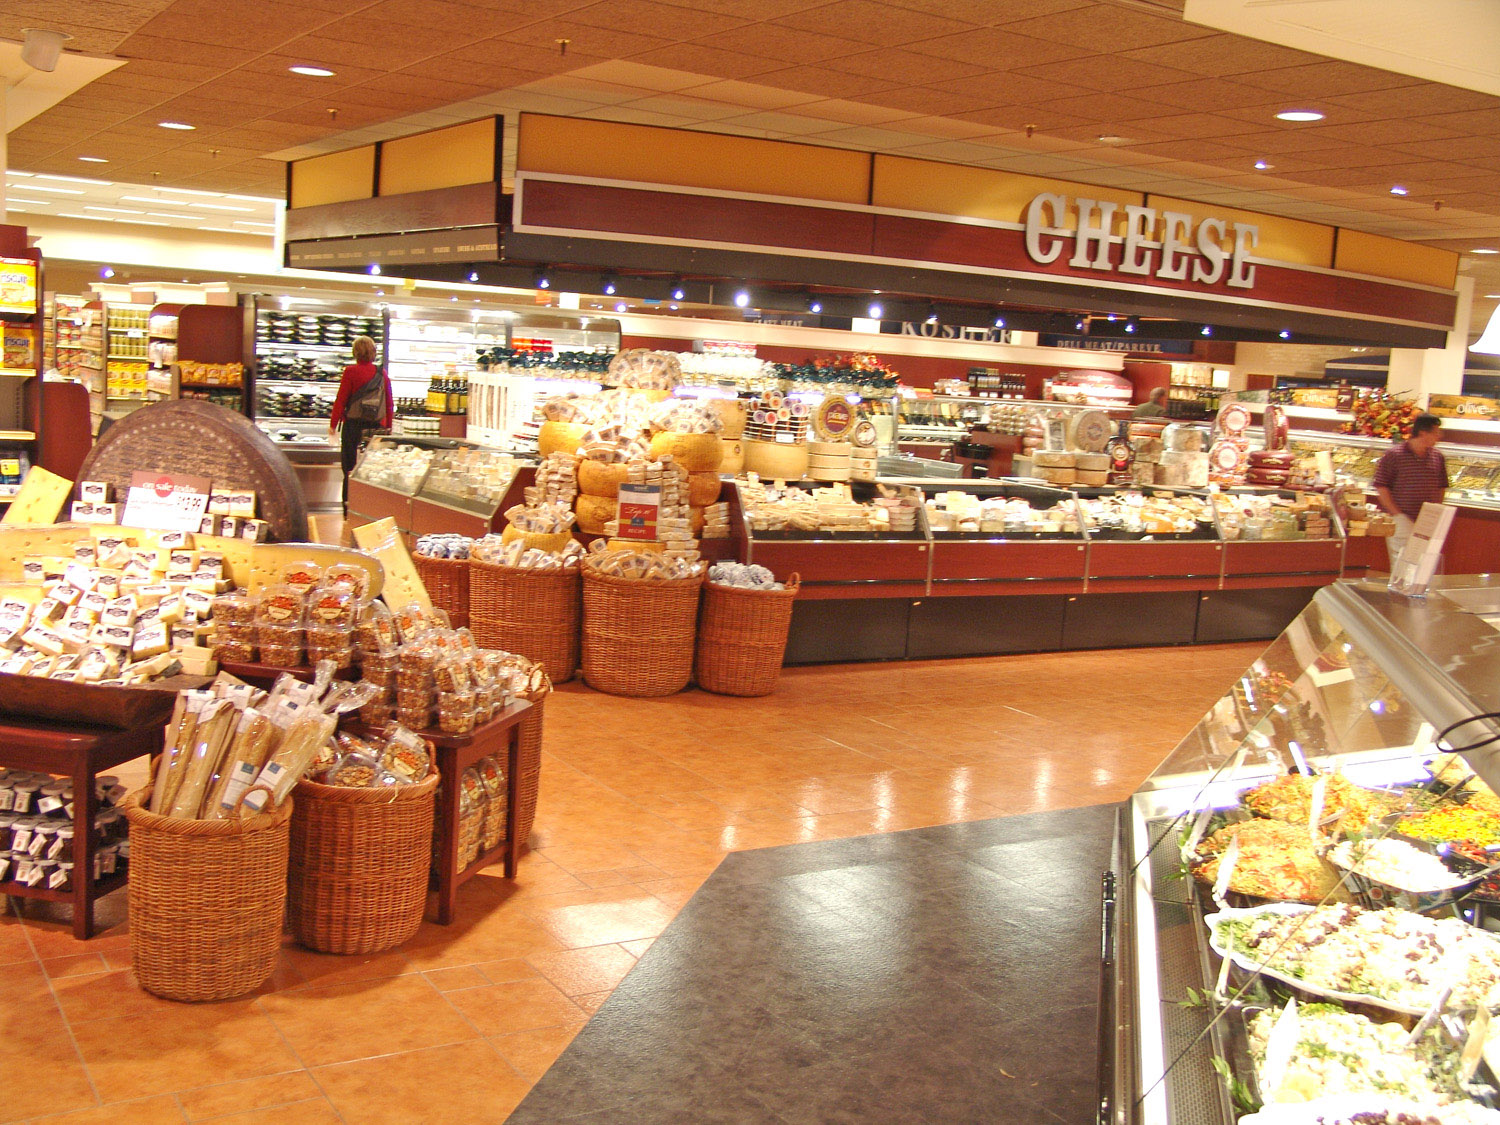 <p>In each of Lunds &#038; Byerlys deli departments, customers will find hundreds of specialty cheeses to choose from in addition to chef-prepared meals, side dishes and gourmet deli salads.</p>